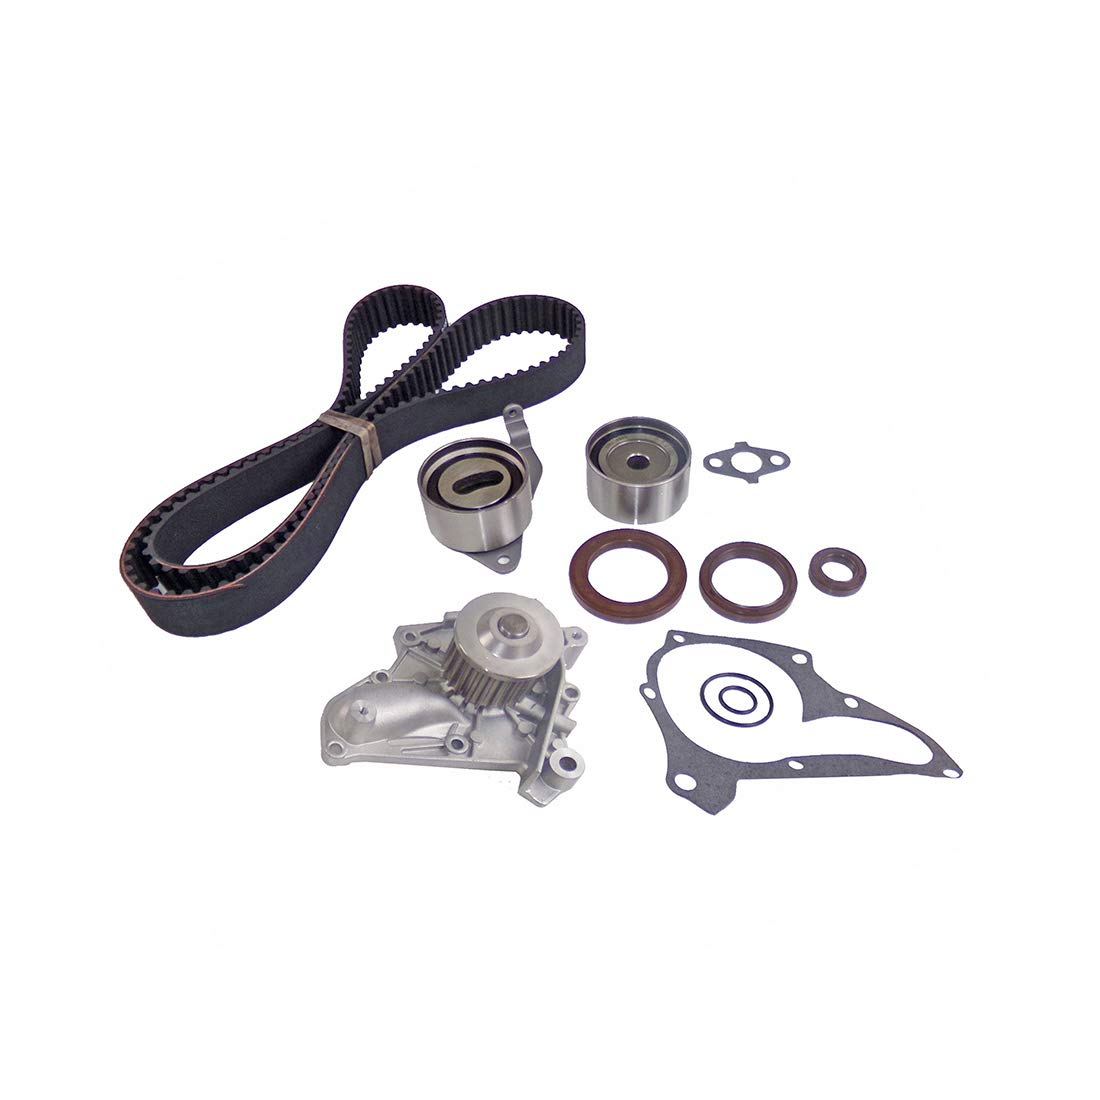 DNJ Timing Belt Kit with Water Pump TBK907WP for 87-01 Toyota 4 Cyl 2.0L 2.2L 122 DOHC 16V 3SFE 5SFE